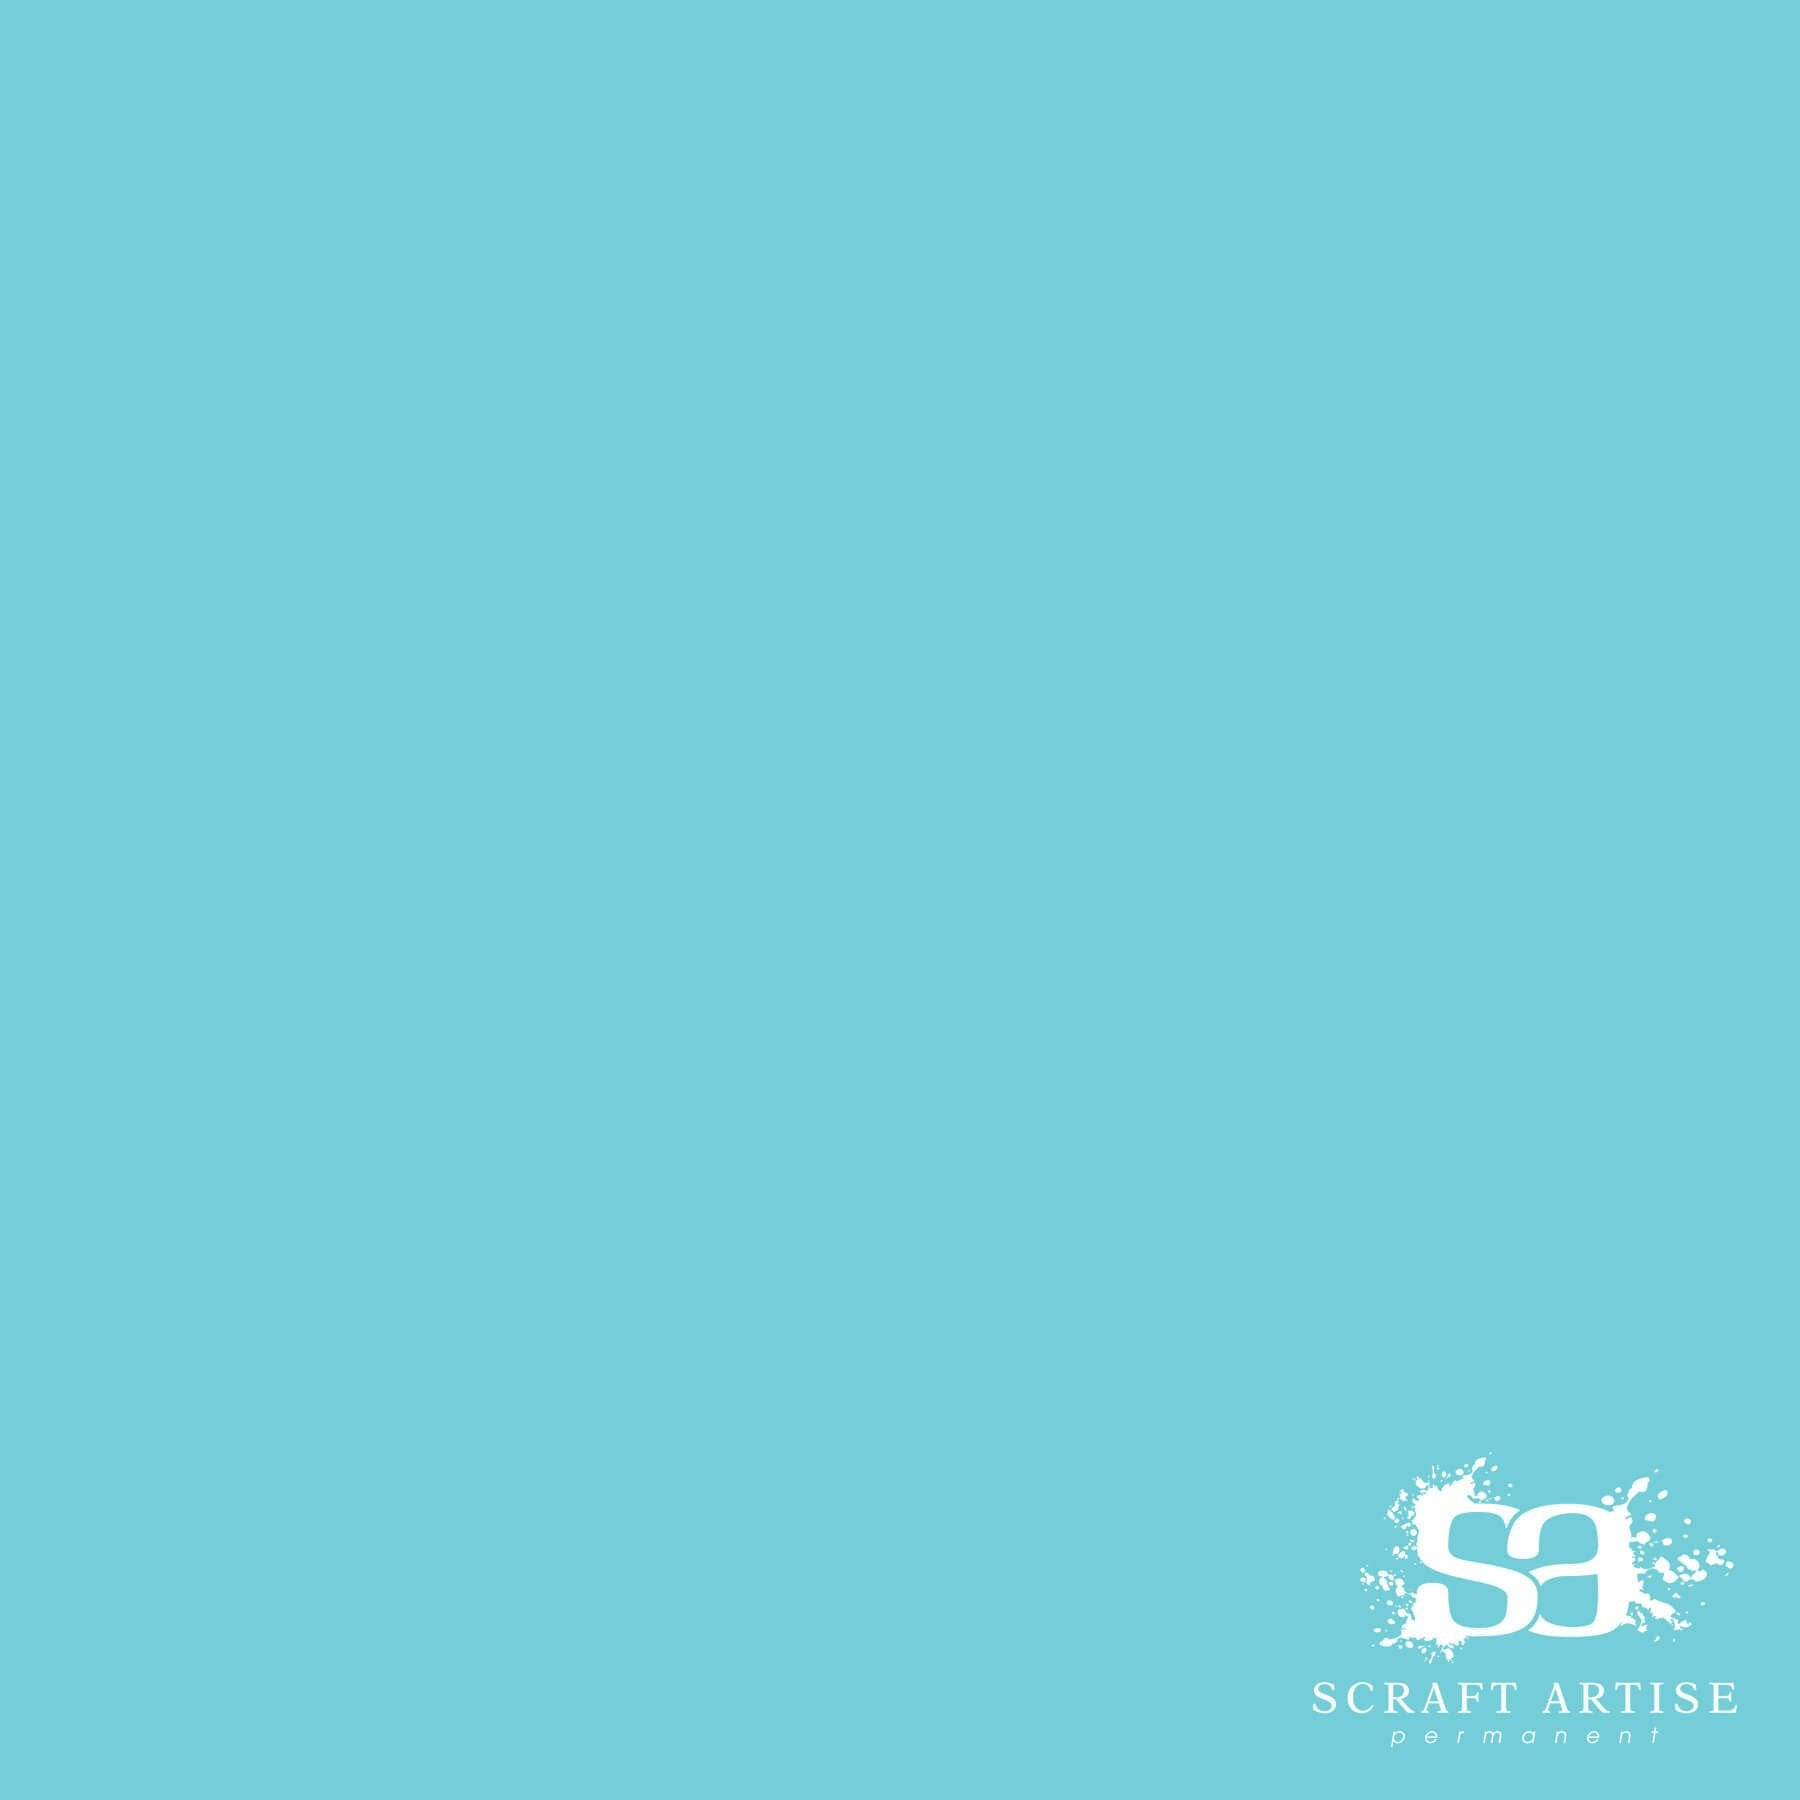 Scraft Artise Turquoise Matte Permanent Adhesive Craft Vinyl 12 x 12 Sheets - 10 Pack